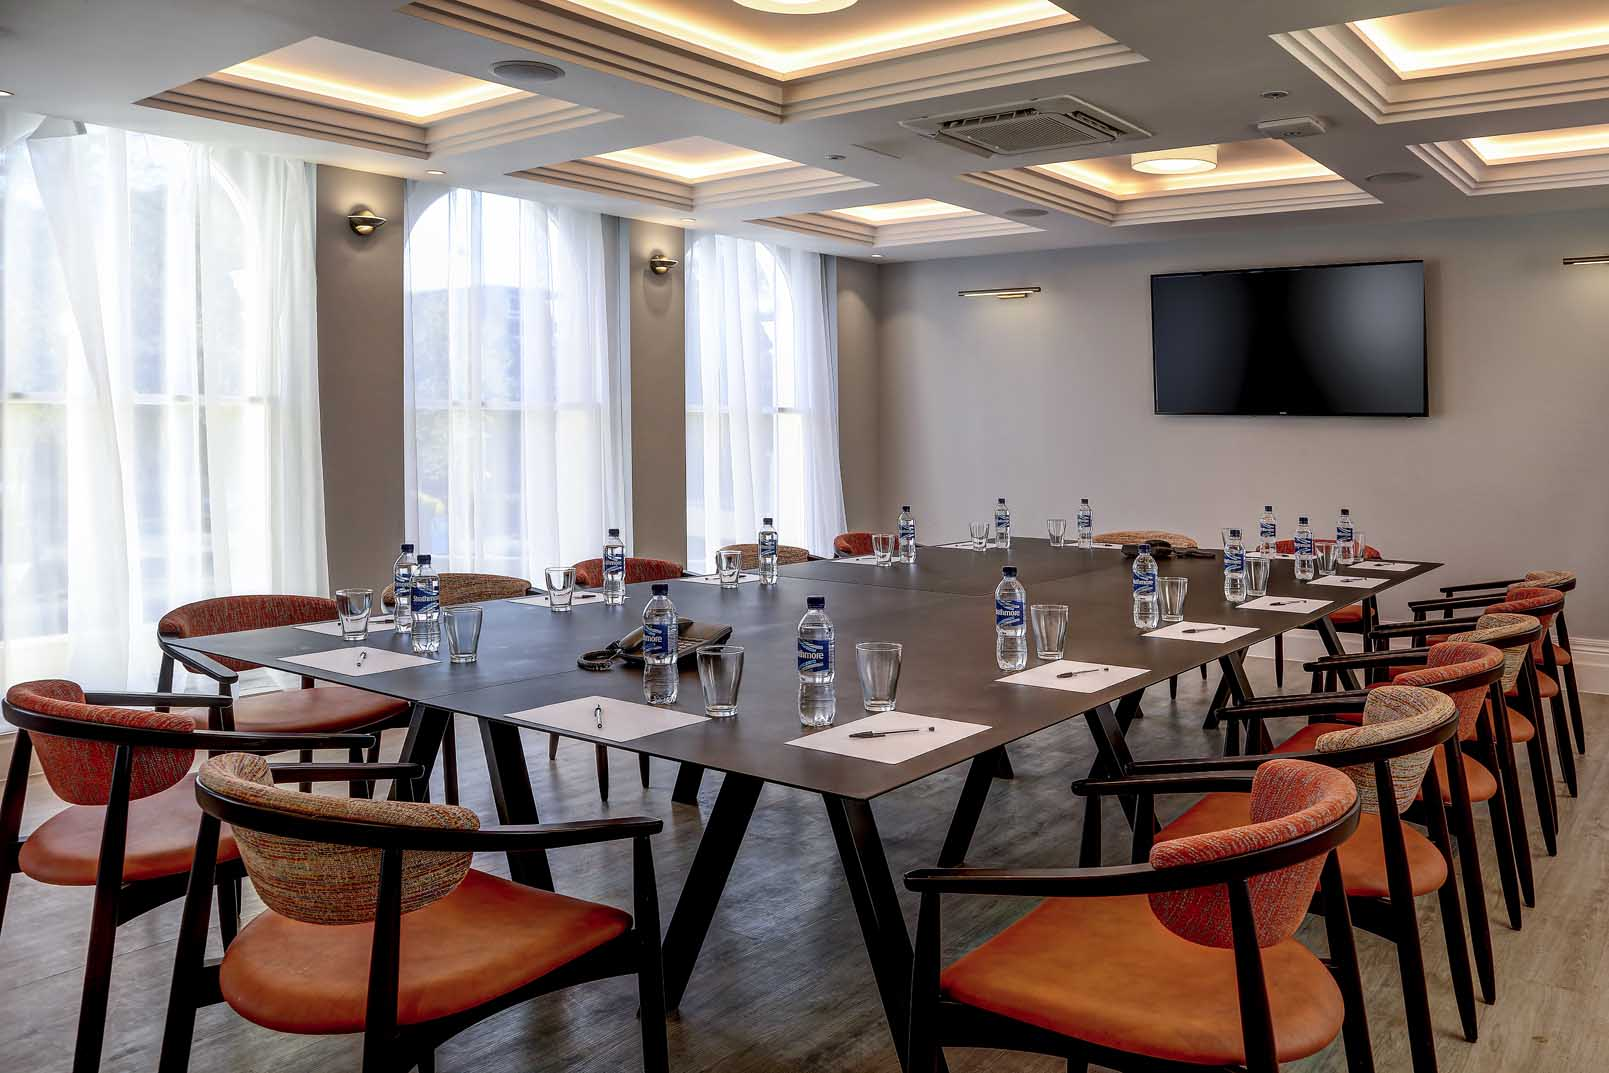 ... crystal-palace-queens-hotel-meeting-space-01-84225 ... 42571c5805